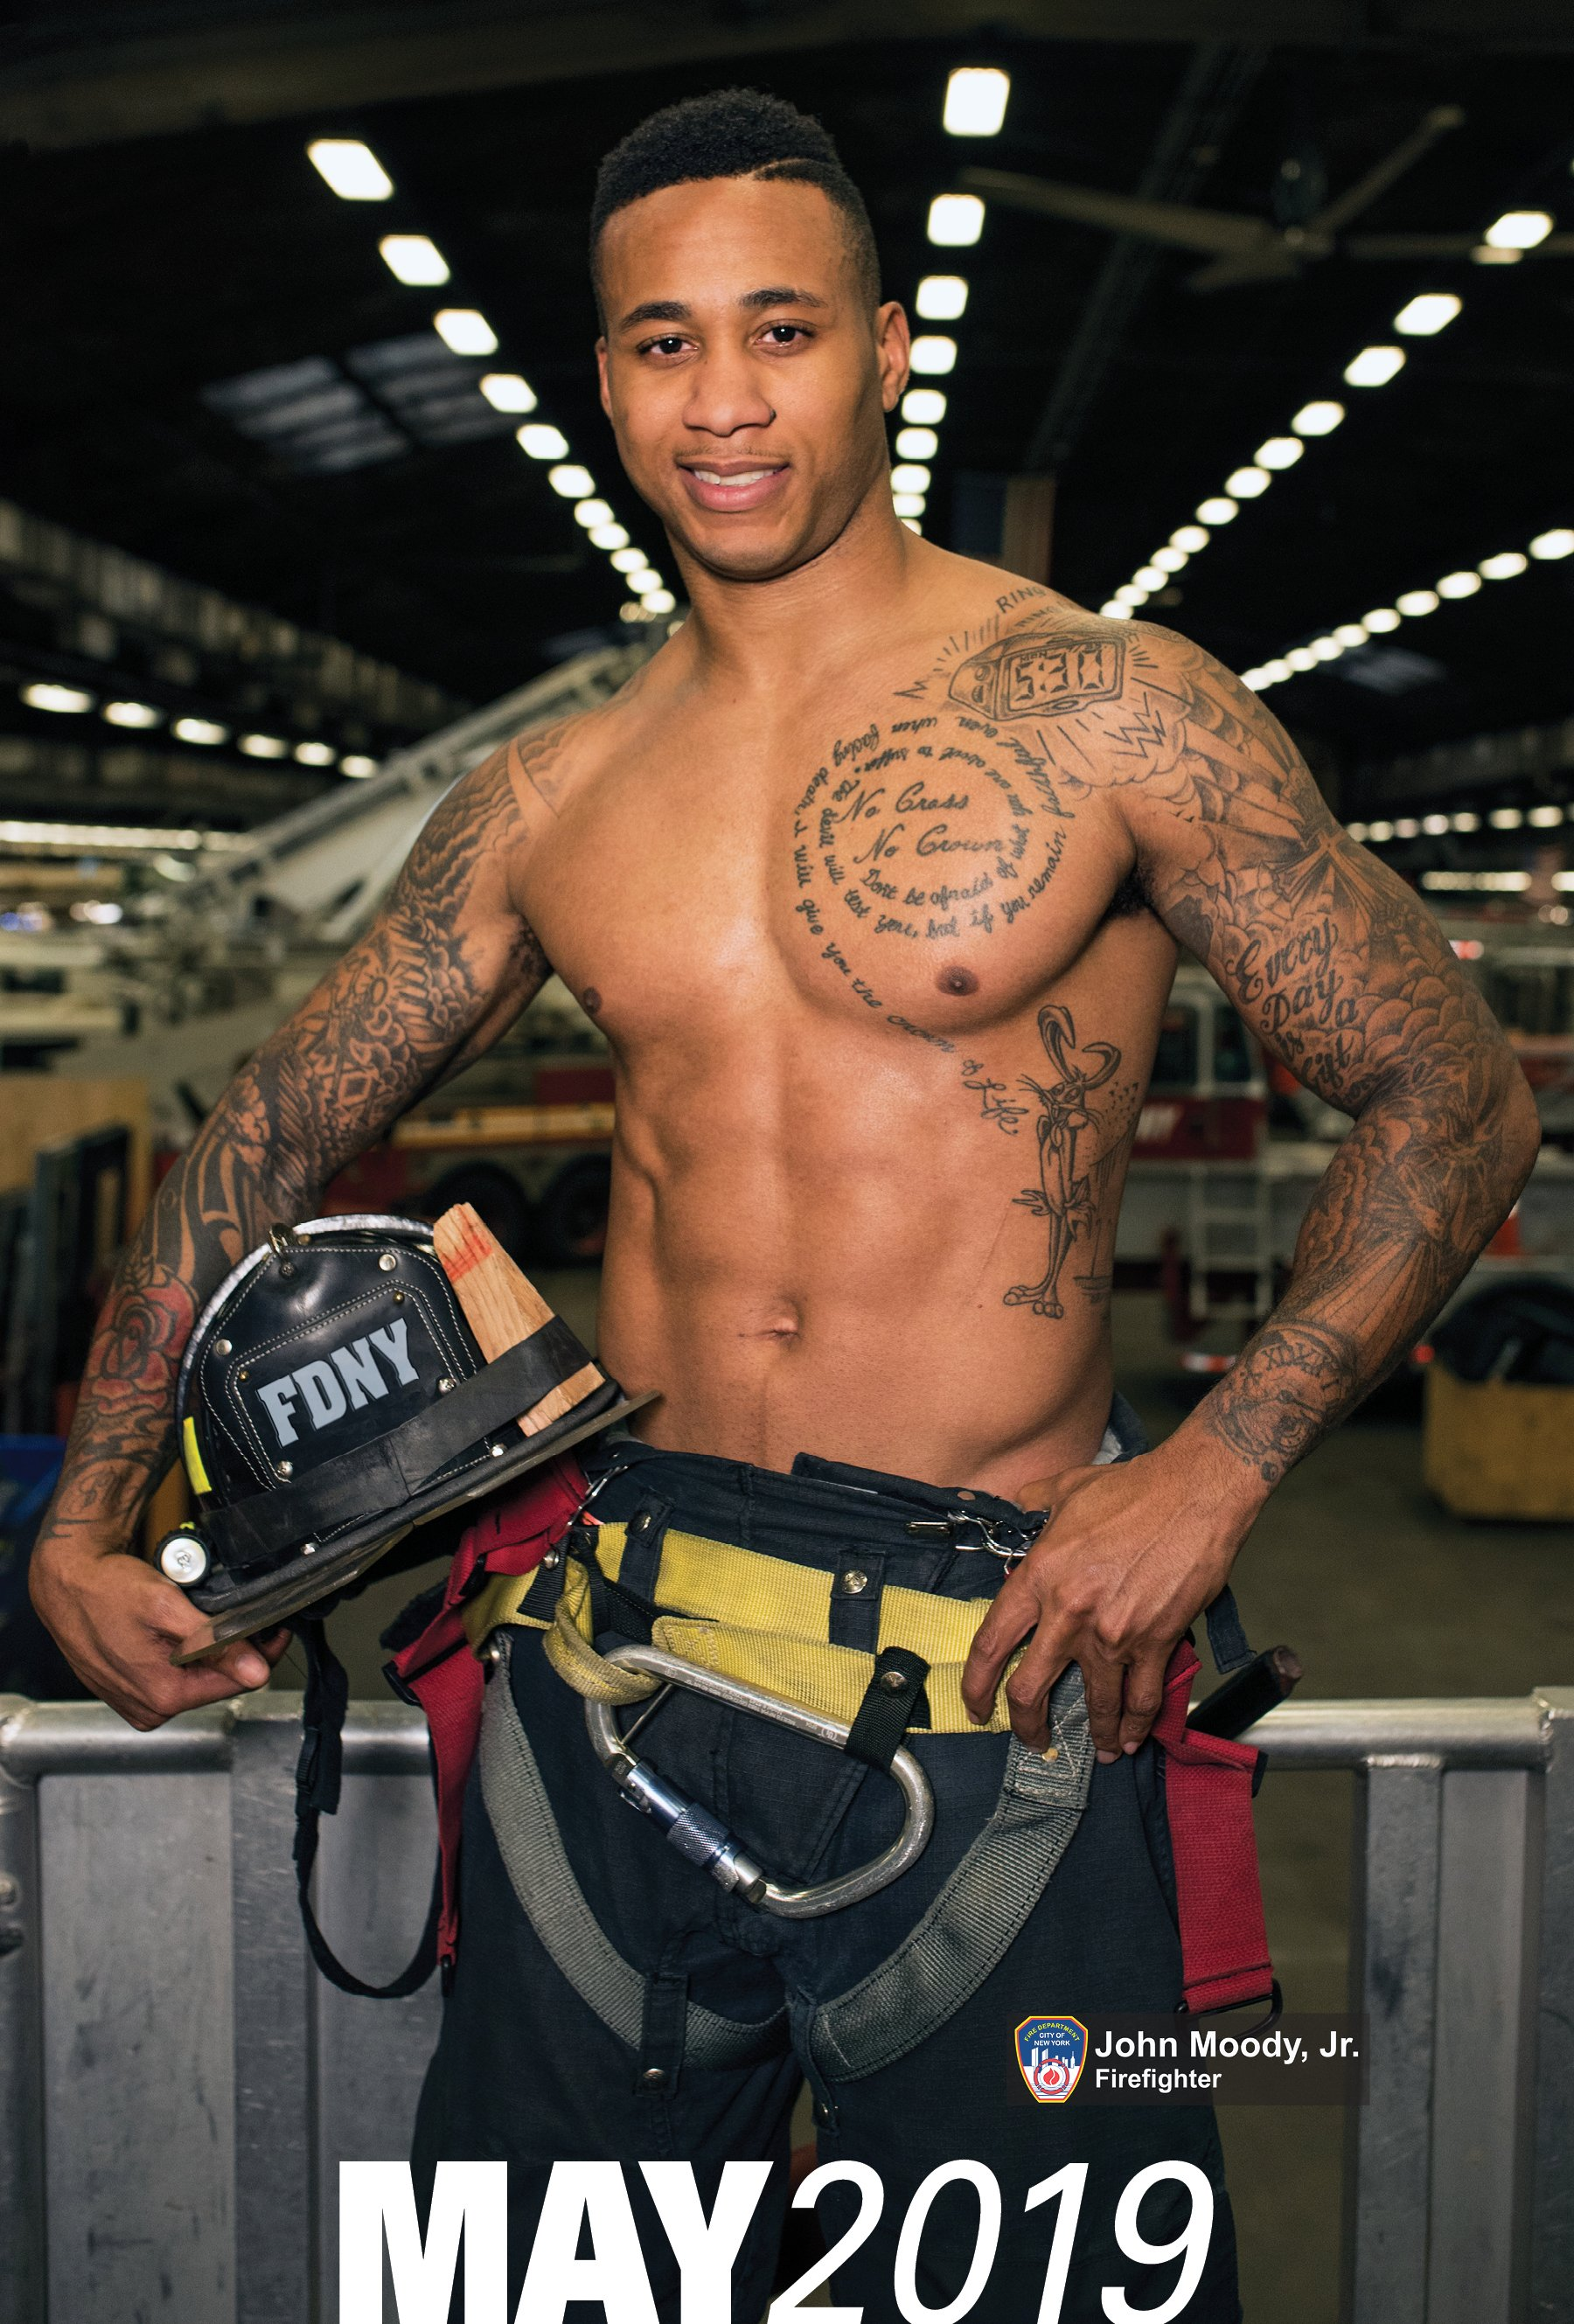 Nyc December 2019 Calendar 2019 OFFICIAL FDNY CALENDAR – DUAL MEN & WOMEN – SPECIAL OFFER